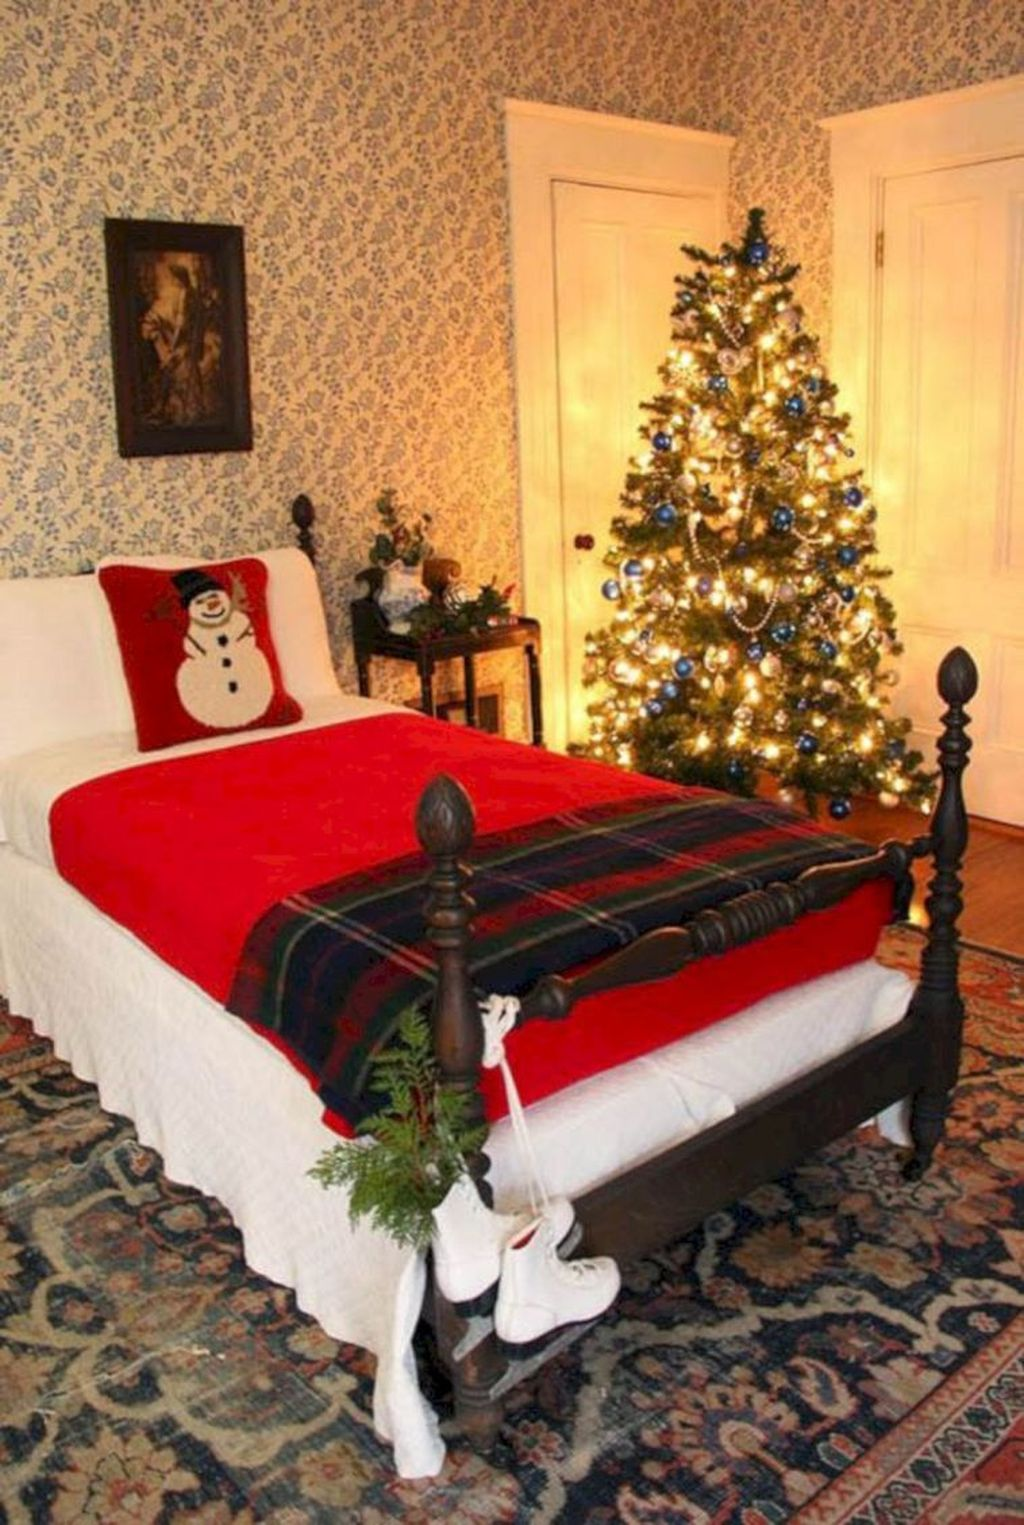 Lovely Christmas Kids Bedroom Decorations 12